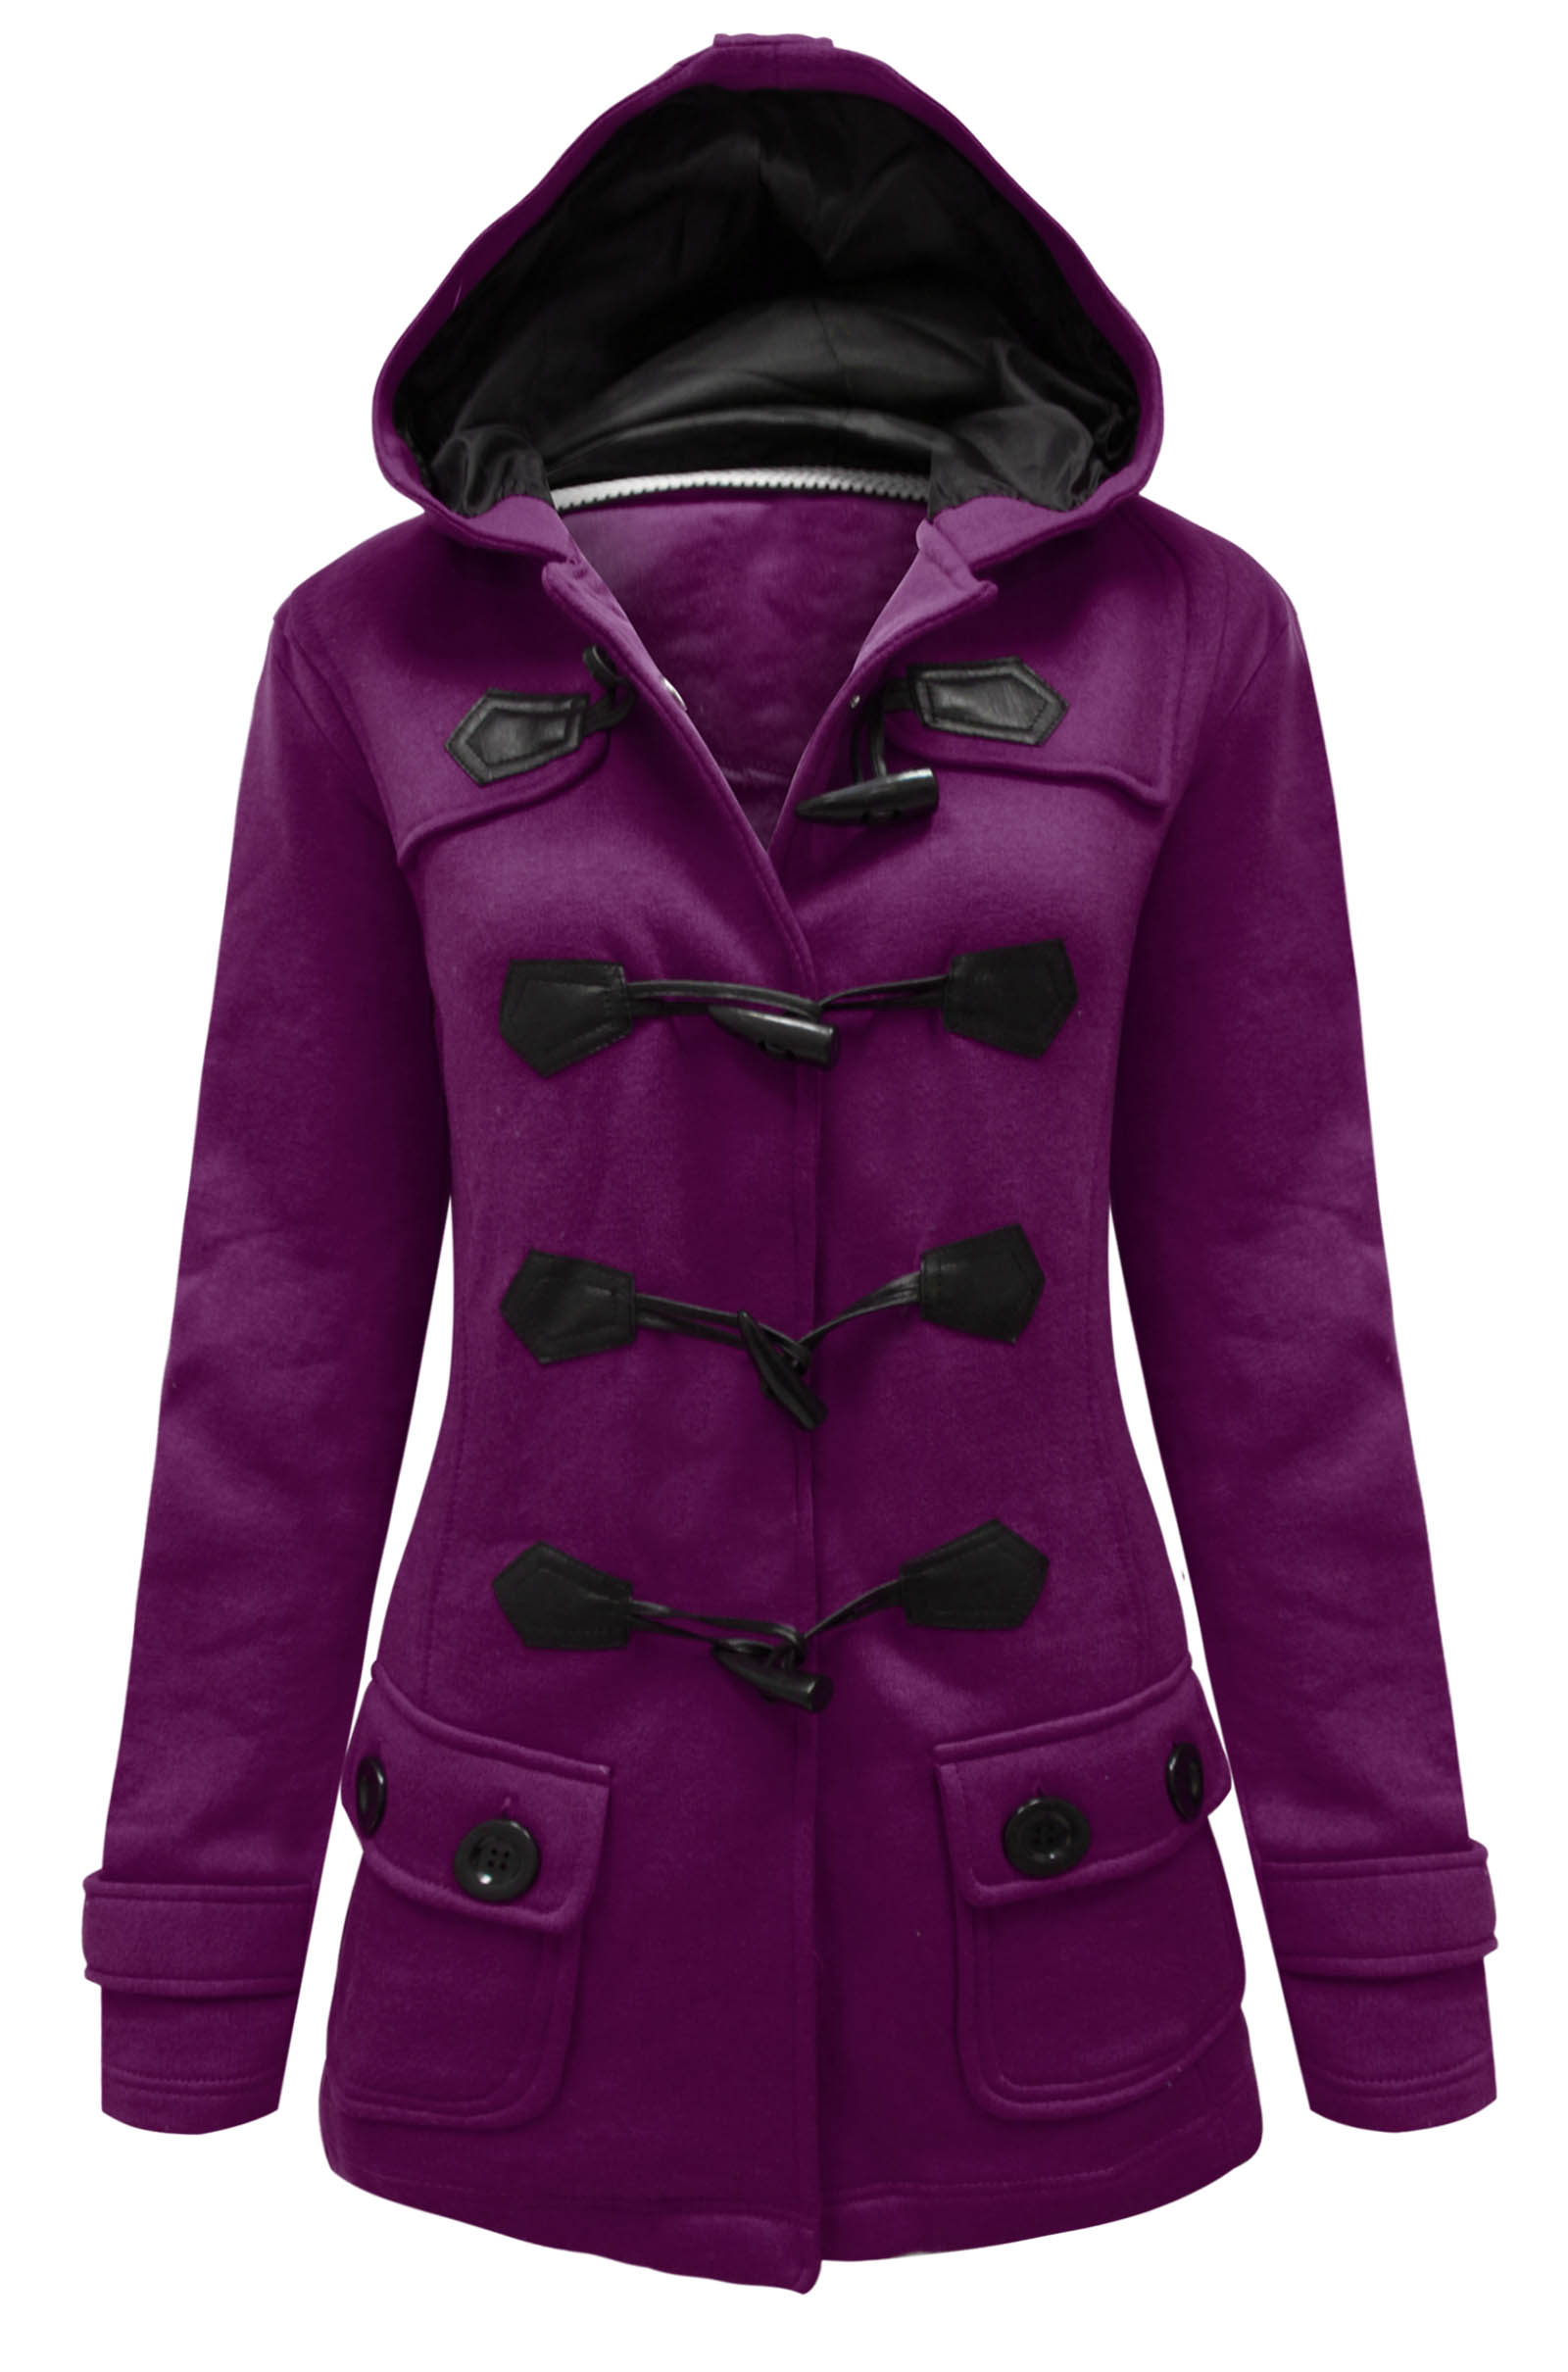 Enjoy free shipping and easy returns every day at Kohl's. Find great deals on Womens Hooded Coats & Jackets at Kohl's today!